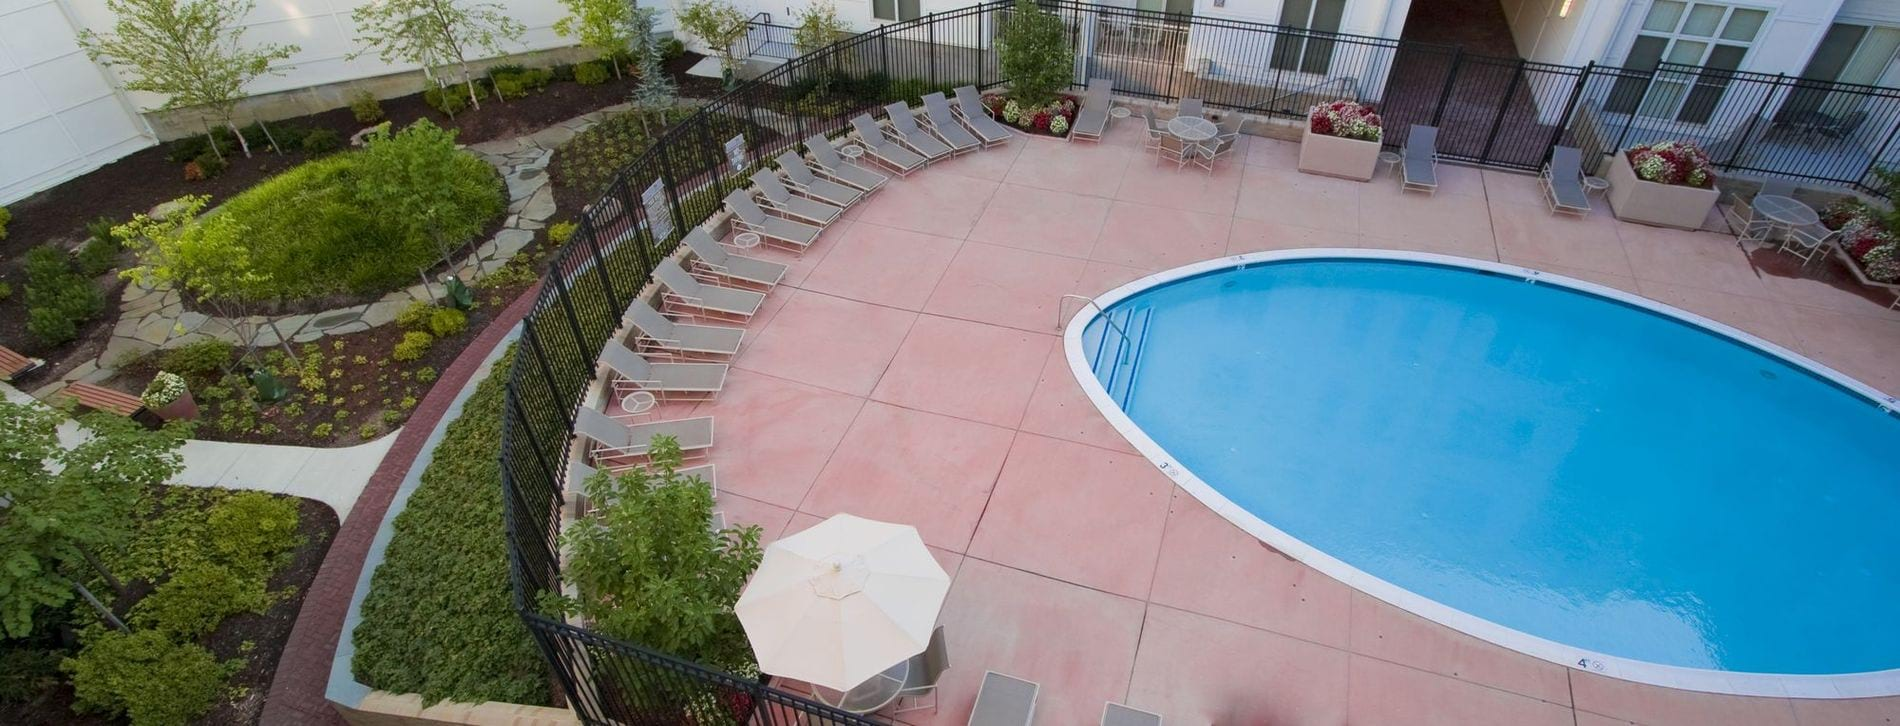 Apartments For Rent Herndon, VA | The Mark At Dulles Station